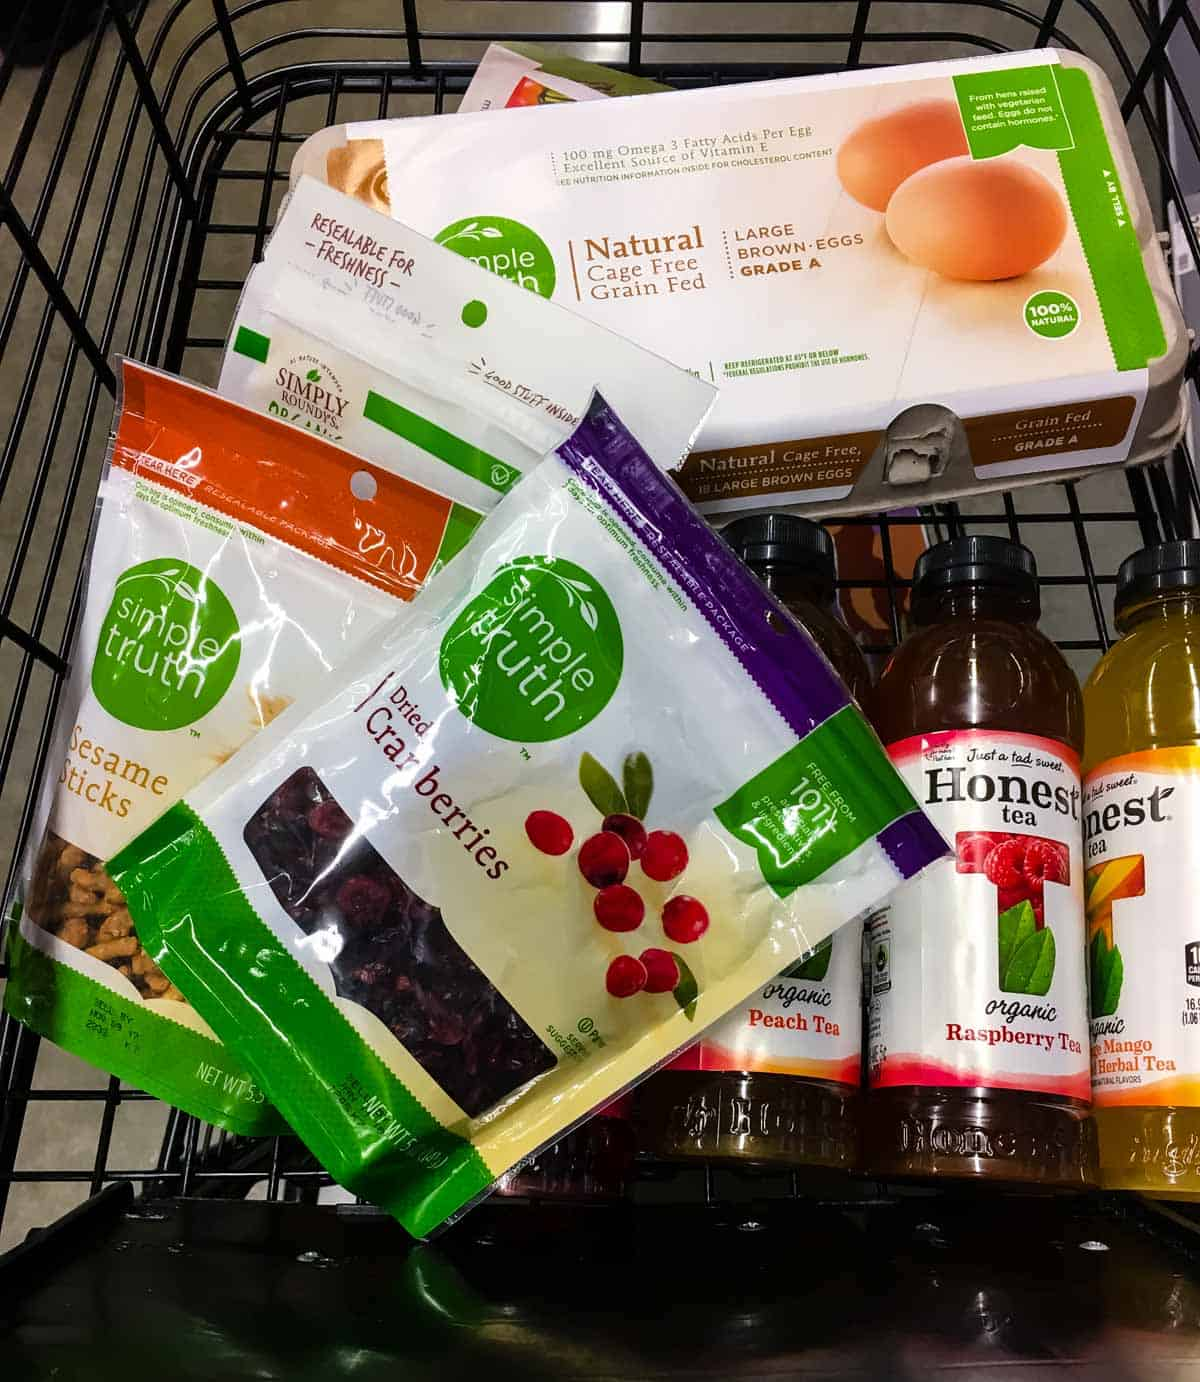 A grocery cart filled with Simple Truth snacks such as cranberries, sesame sticks. There are also a few bottles of Honest Tea and Simple Truth 24 count egg carton